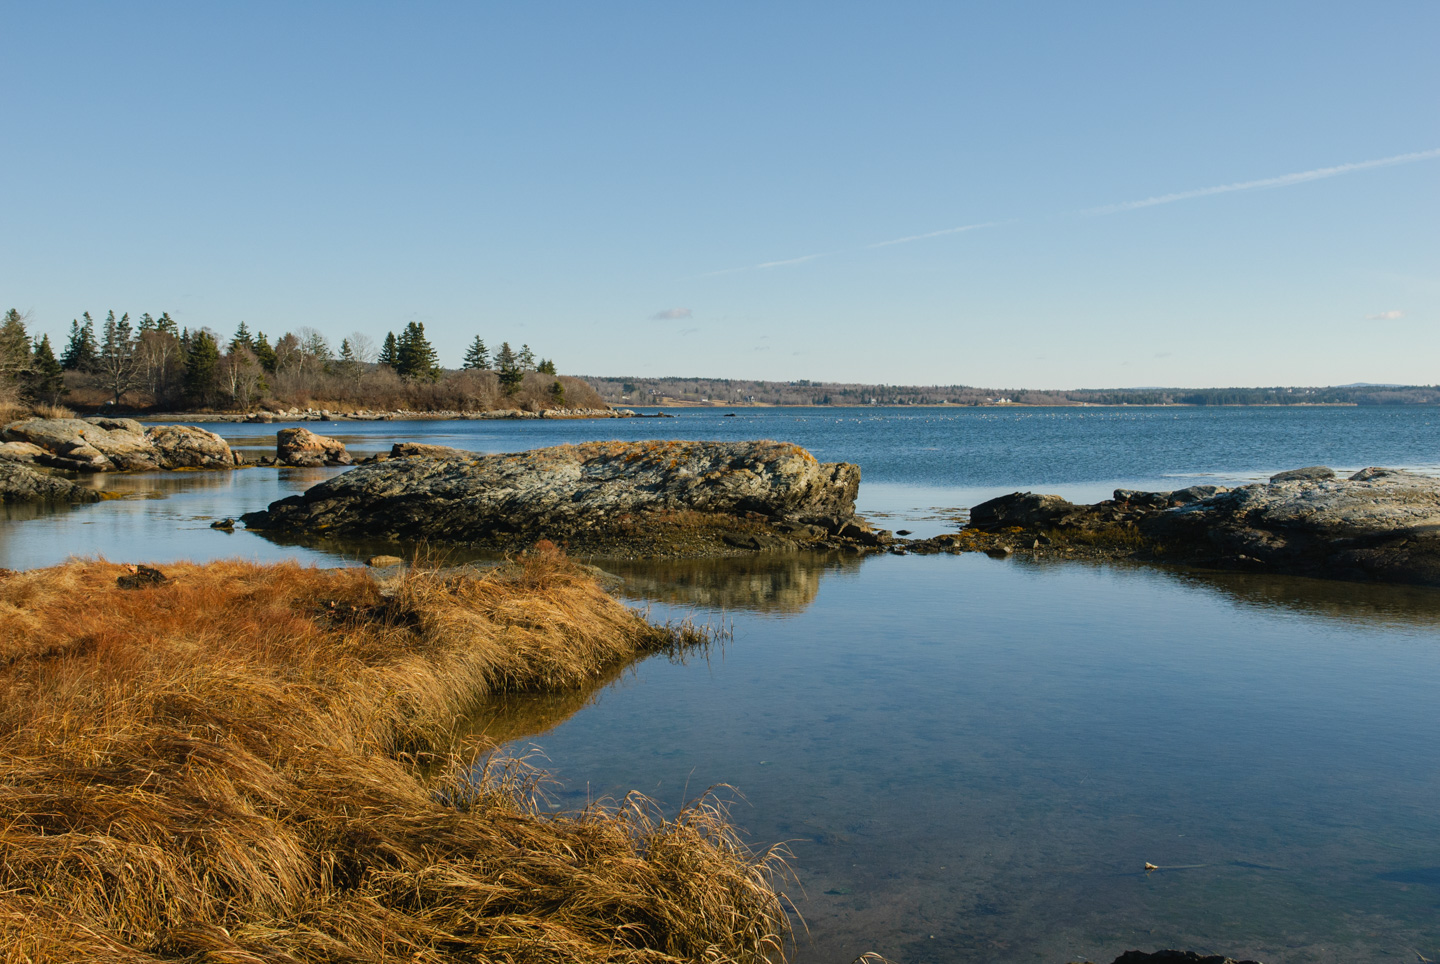 View back to mainland from Deer Isle